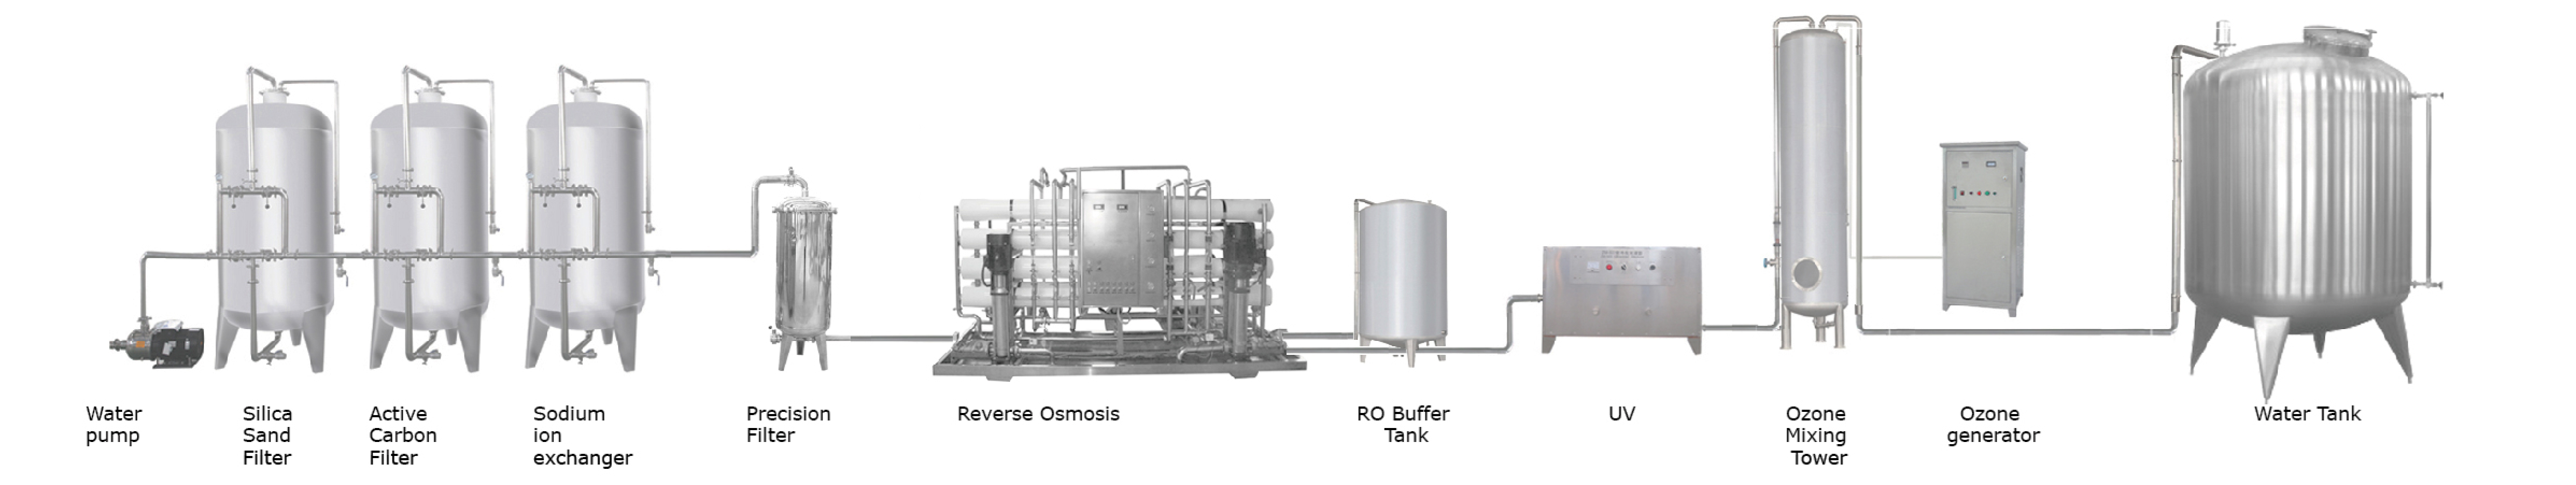 Pure Water Treatment Plants.jpg